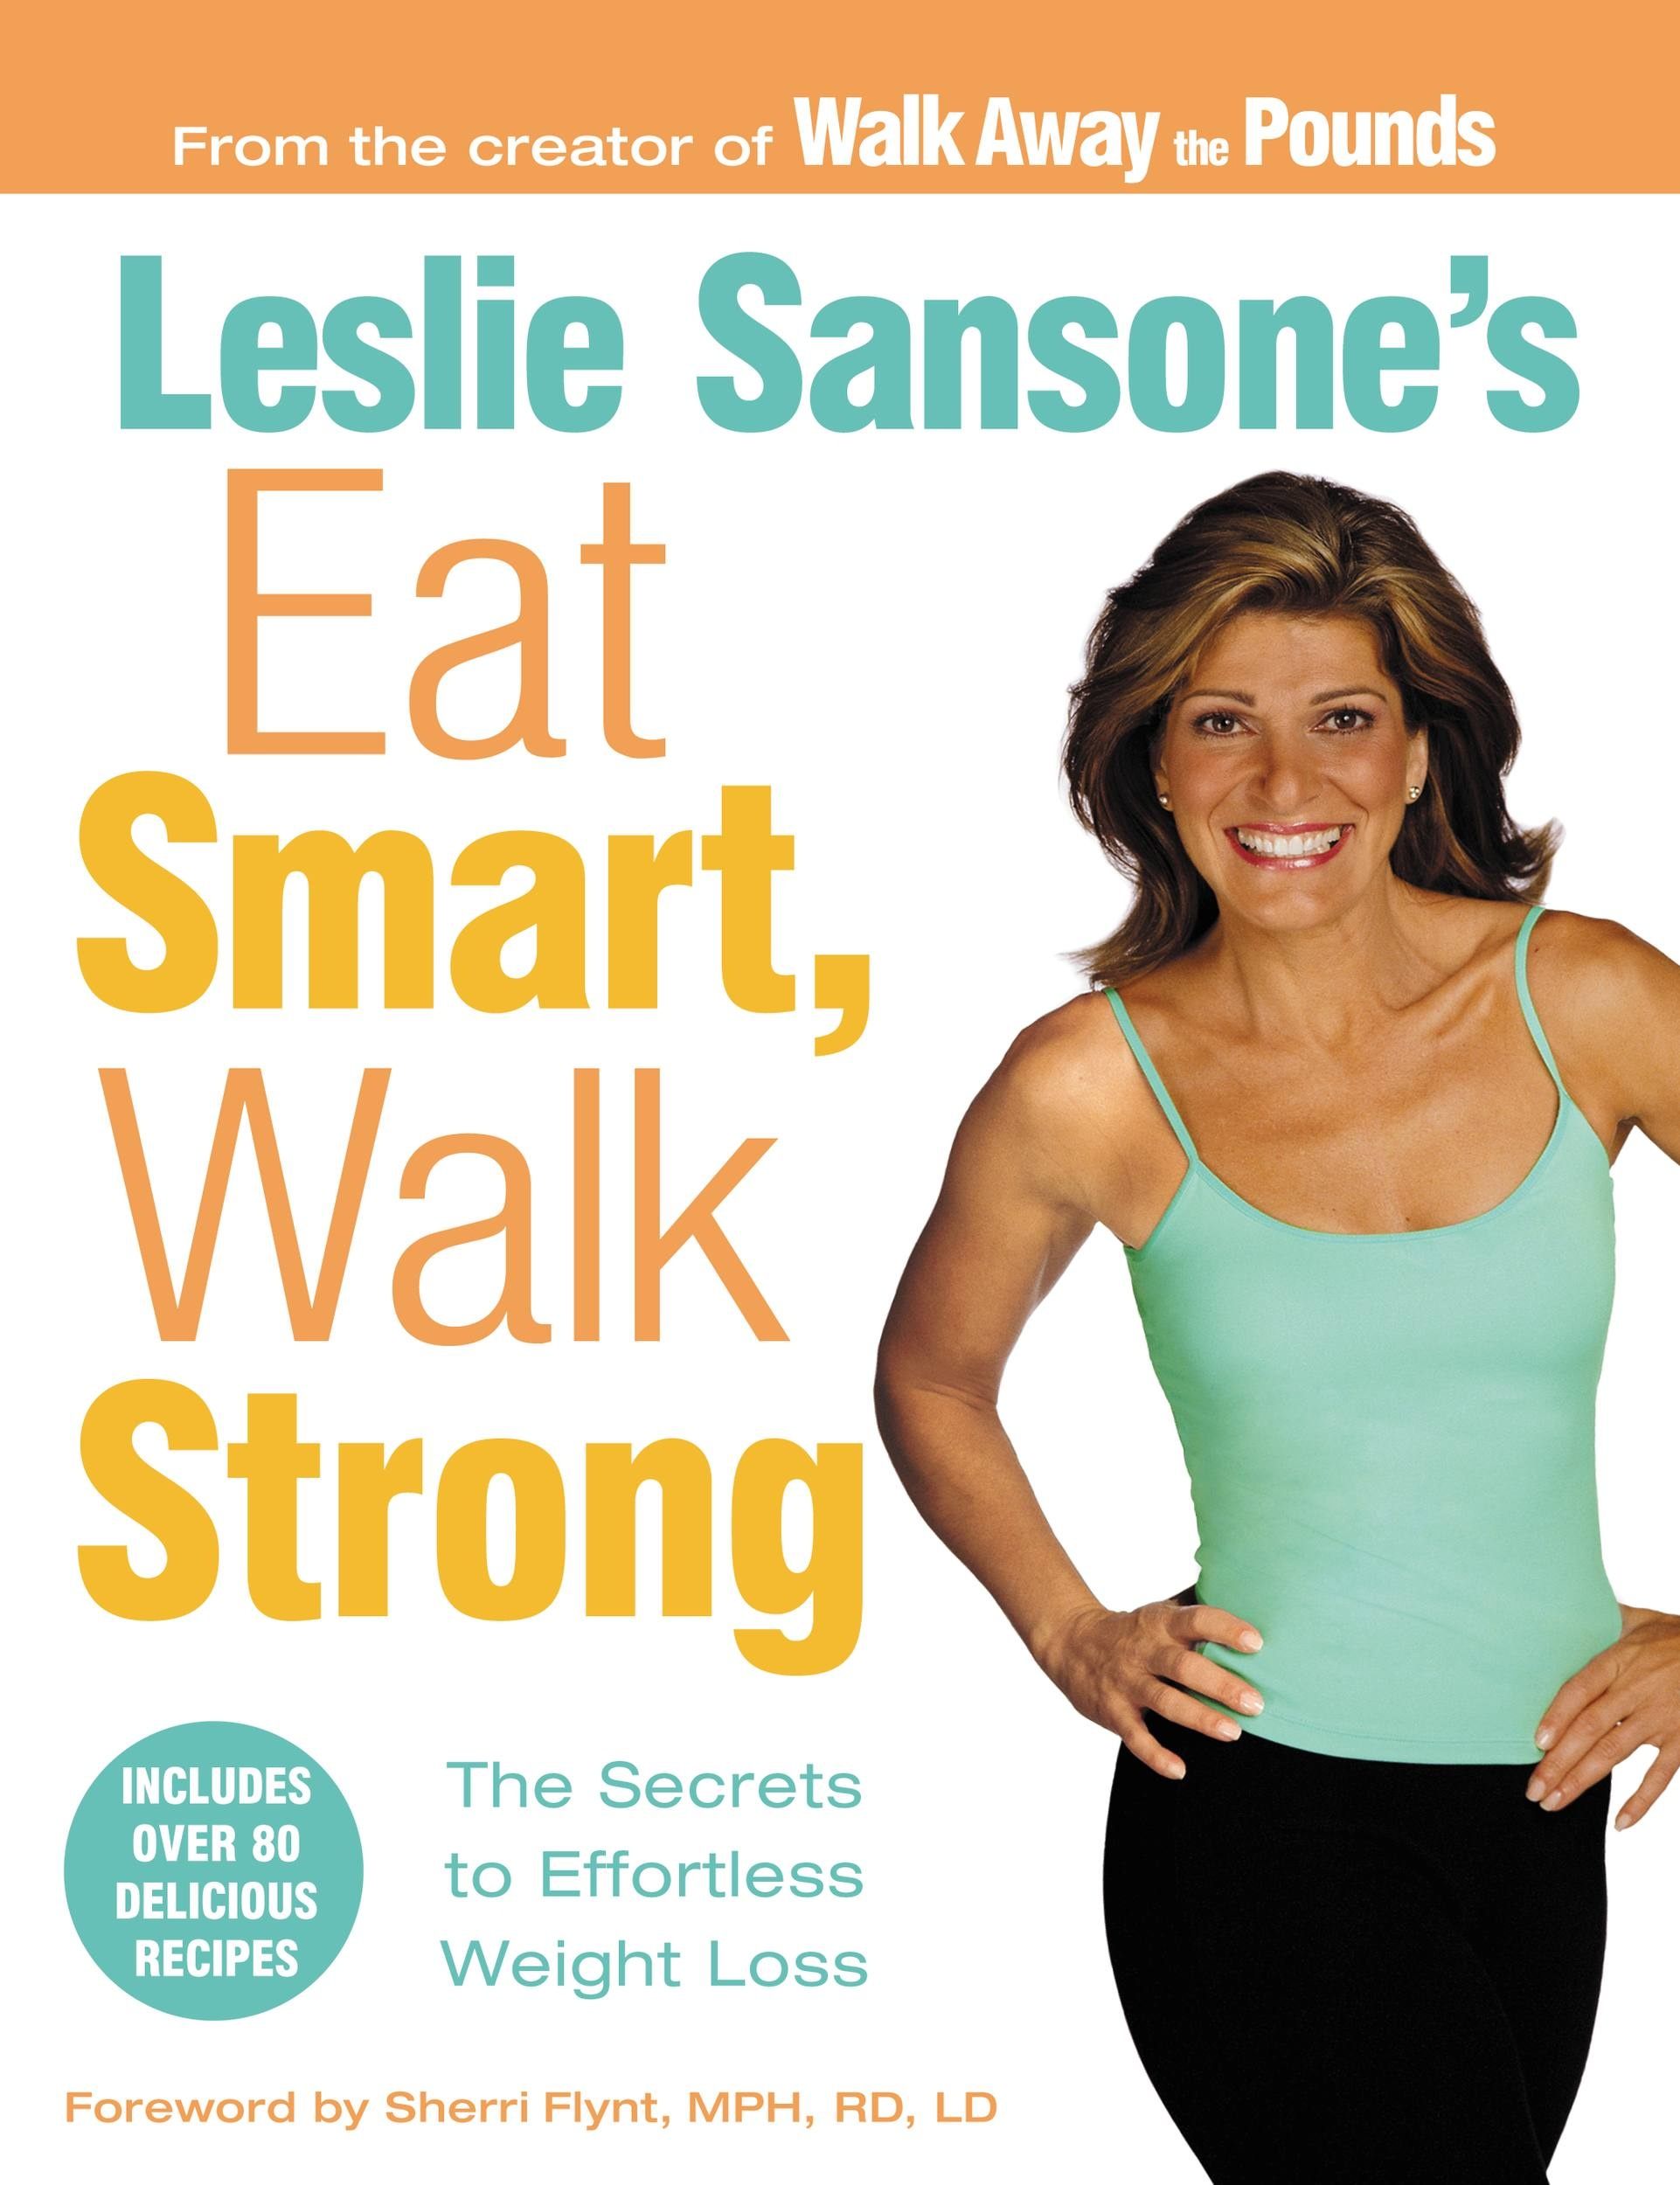 Leslie Sansone's Eat Smart, Walk Strong